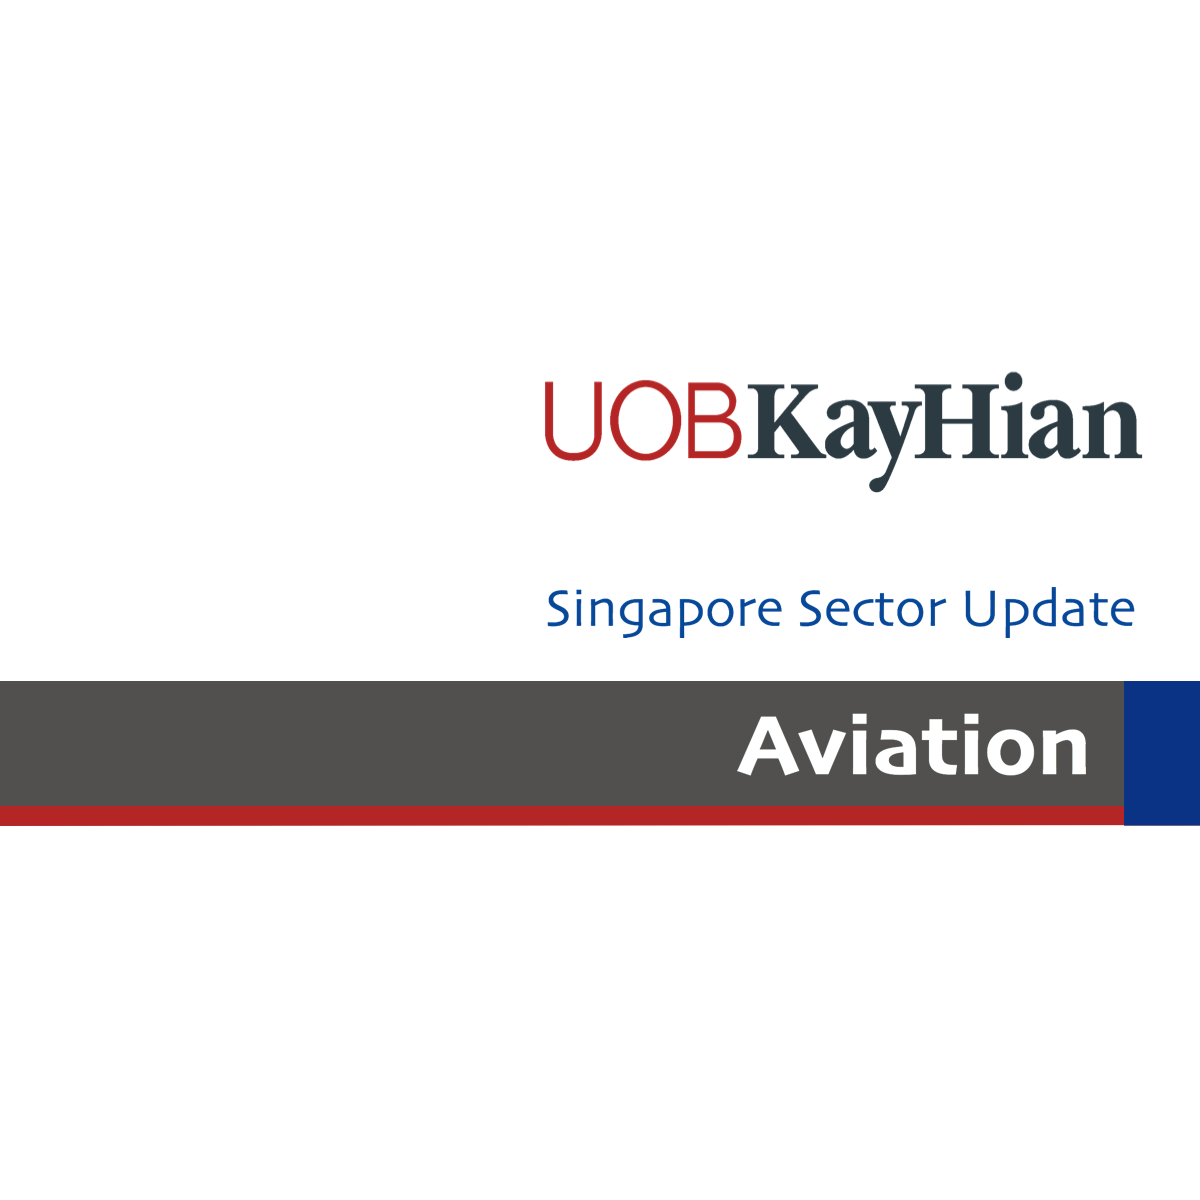 Aviation – Singapore - UOB Kay Hian 2017-01-31: 3QFY17 Results Preview ~ Expect A Lacklustre Quarter